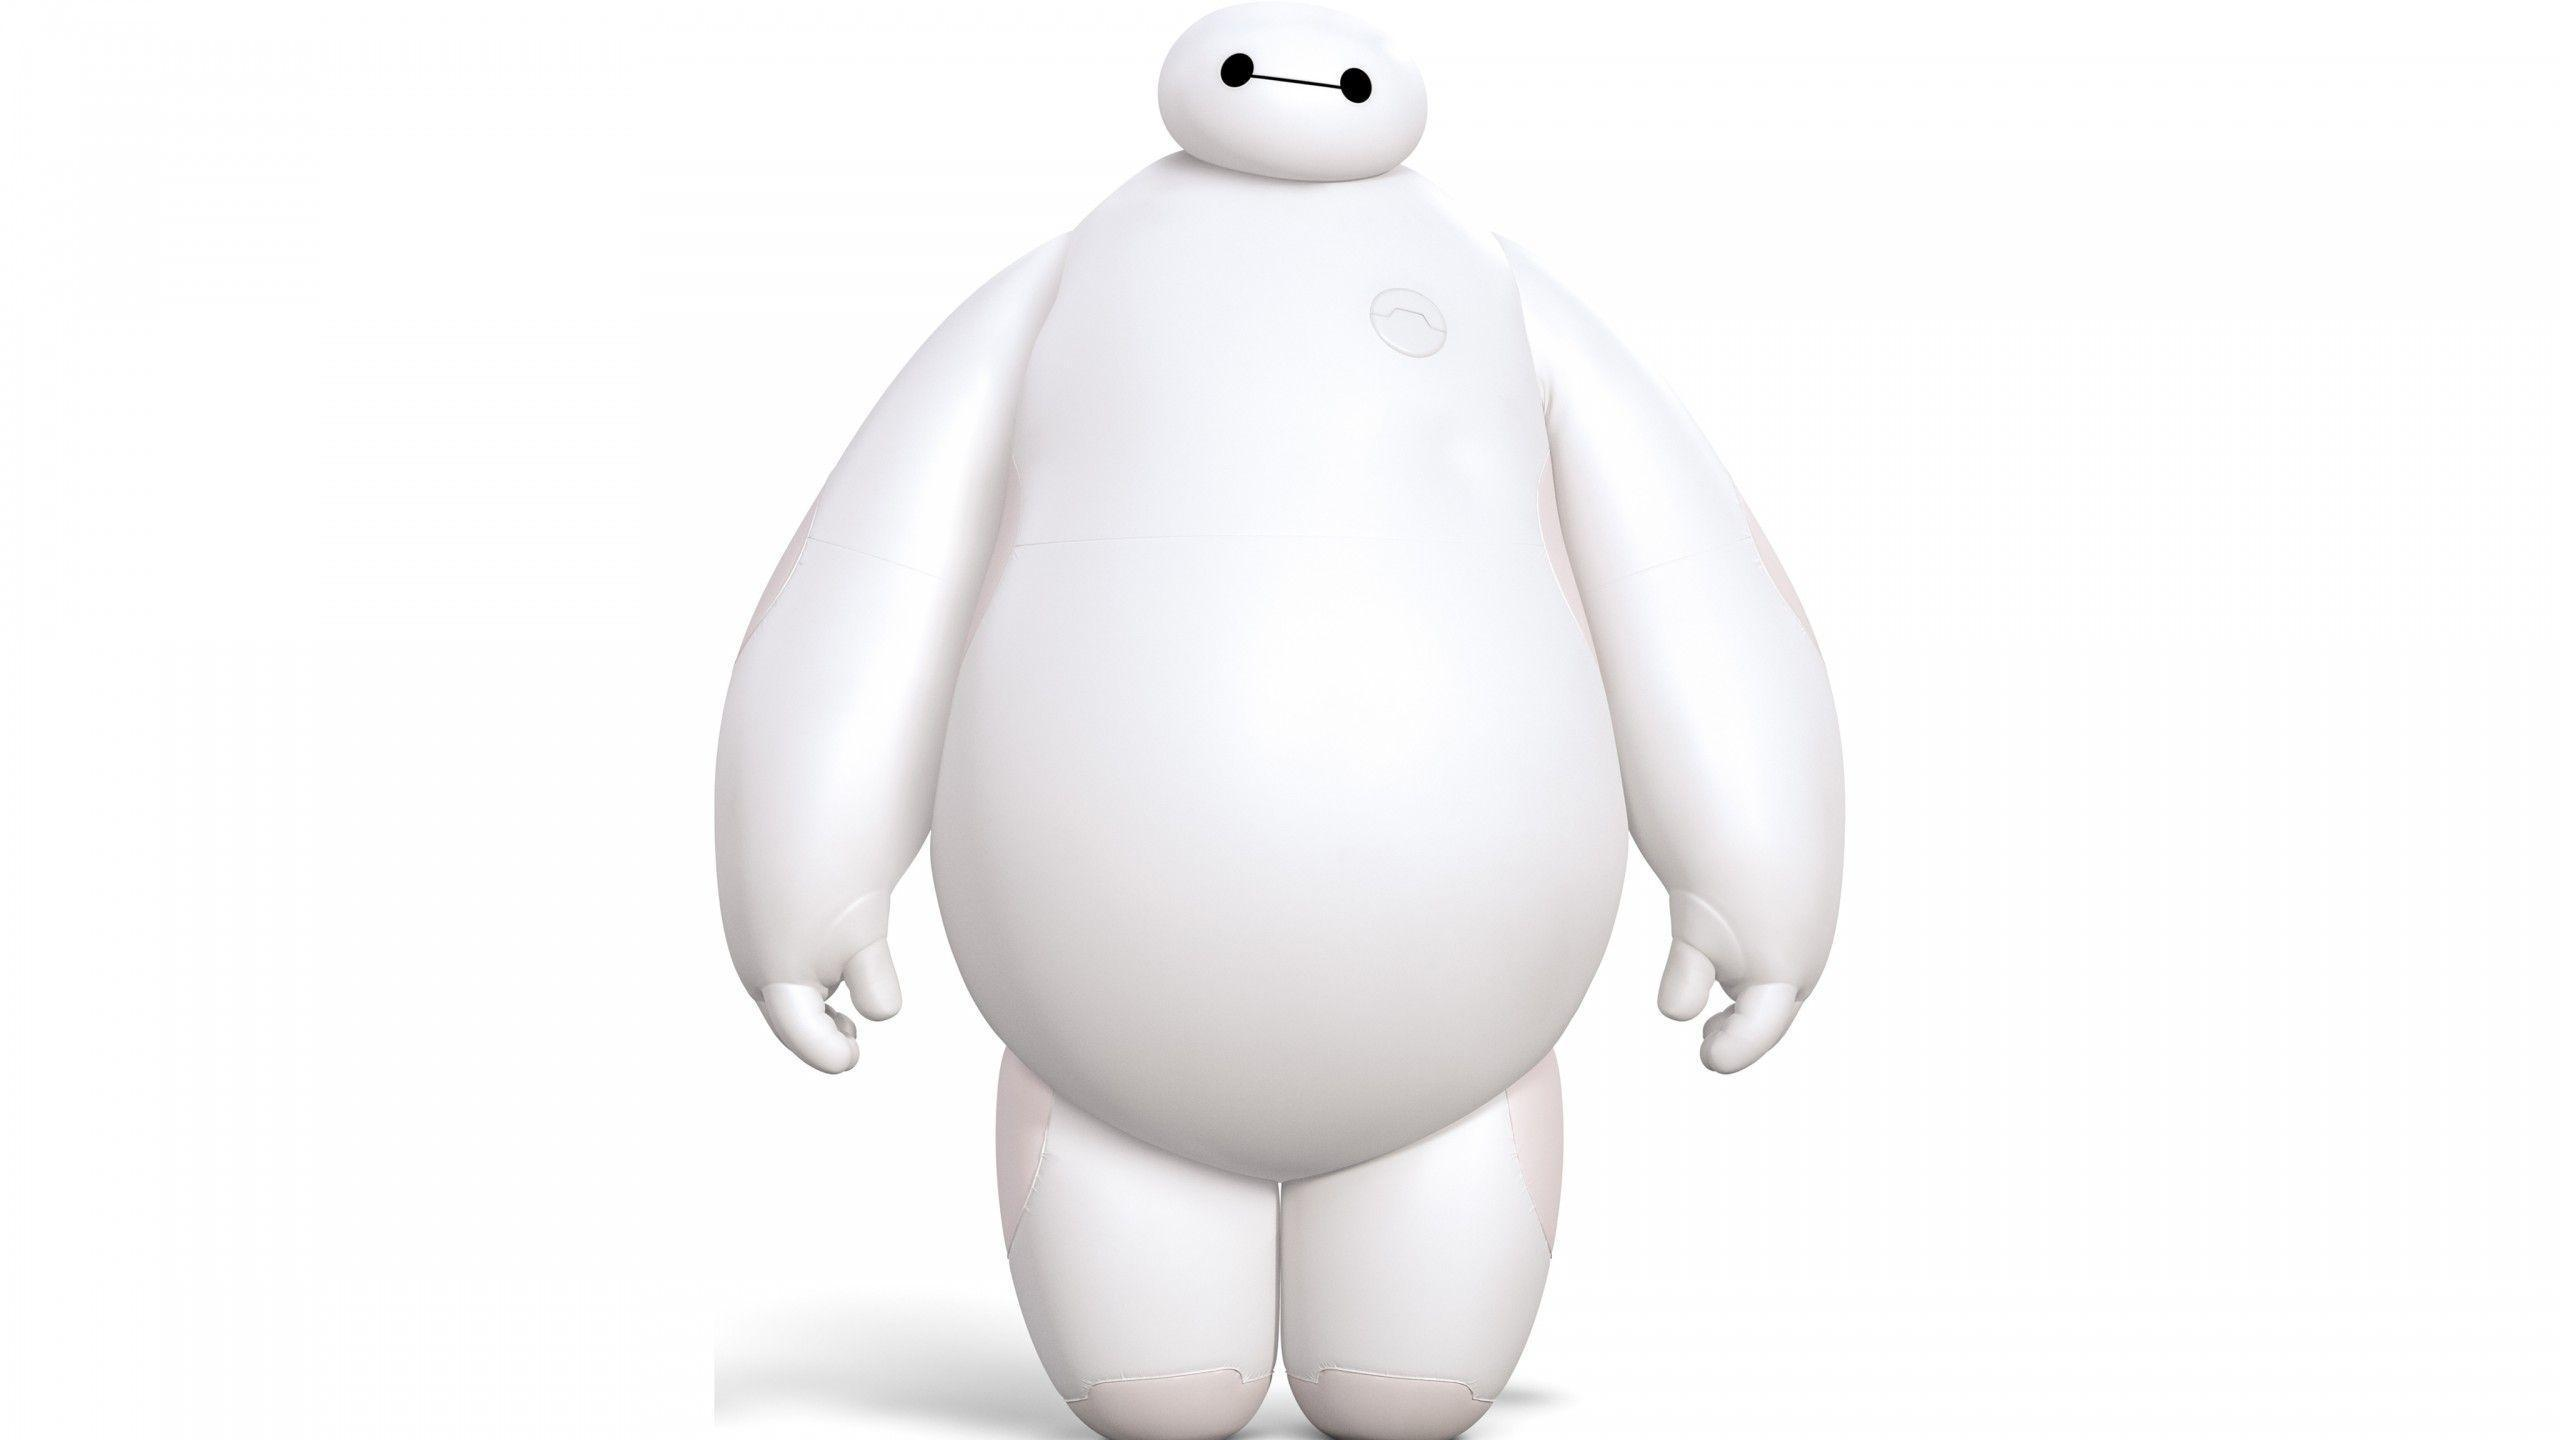 21 Baymax HD Wallpapers | Backgrounds - Wallpaper Abyss